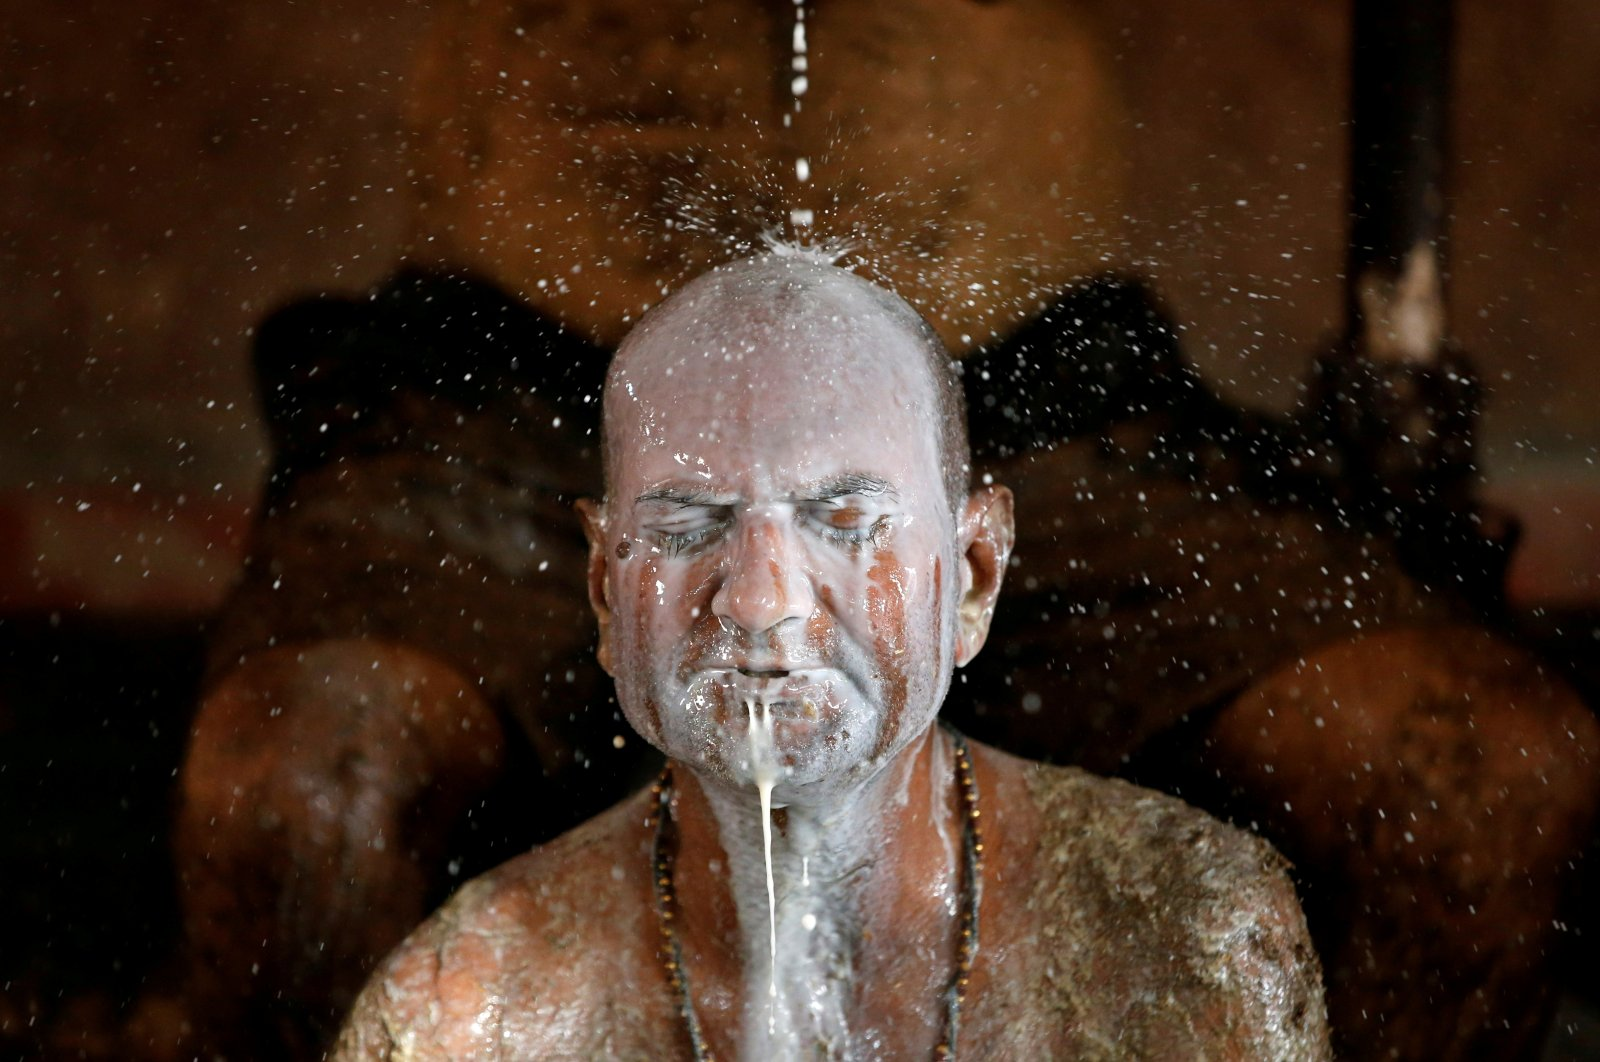 """A man bathes in cow milk to remove cow dung from his body during """"cow dung therapy."""" believing it will boost his immunity to defend against the coronavirus disease at the cow shelter on the outskirts of Ahmedabad, India, May 9, 2021. (Reuters Photo)"""